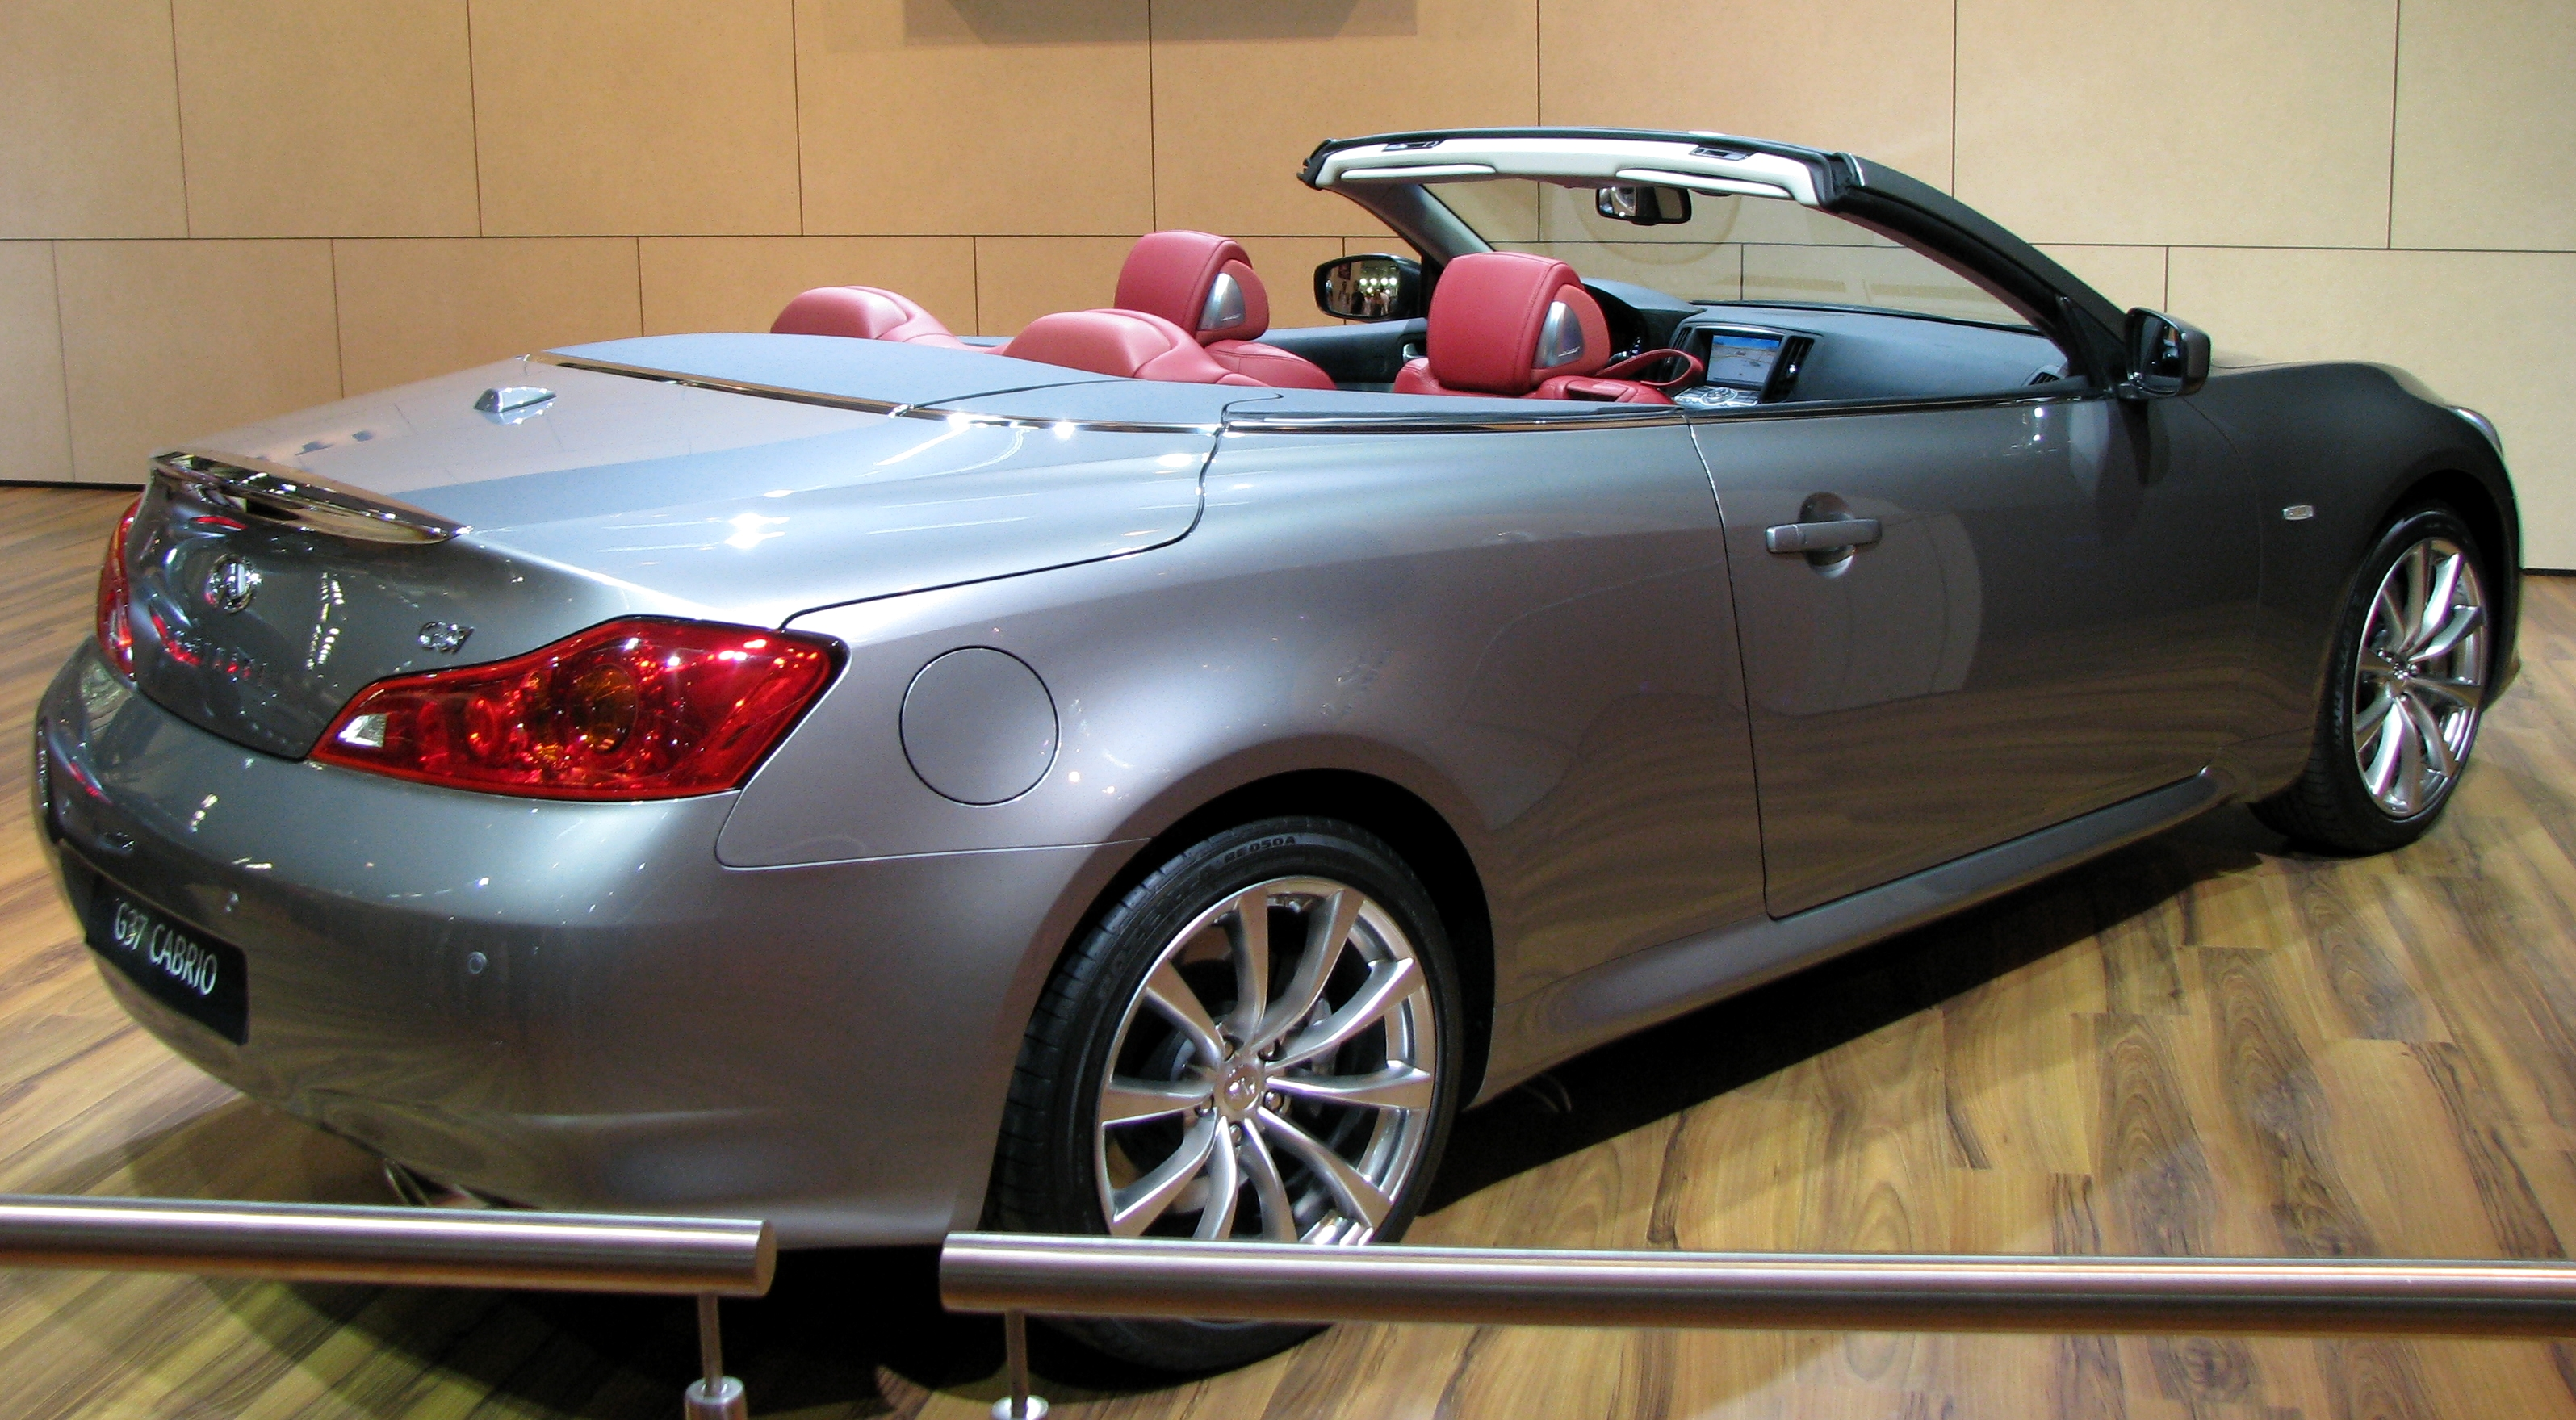 infinity photos model photo pic infiniti photogallery new pictures with pics convertible